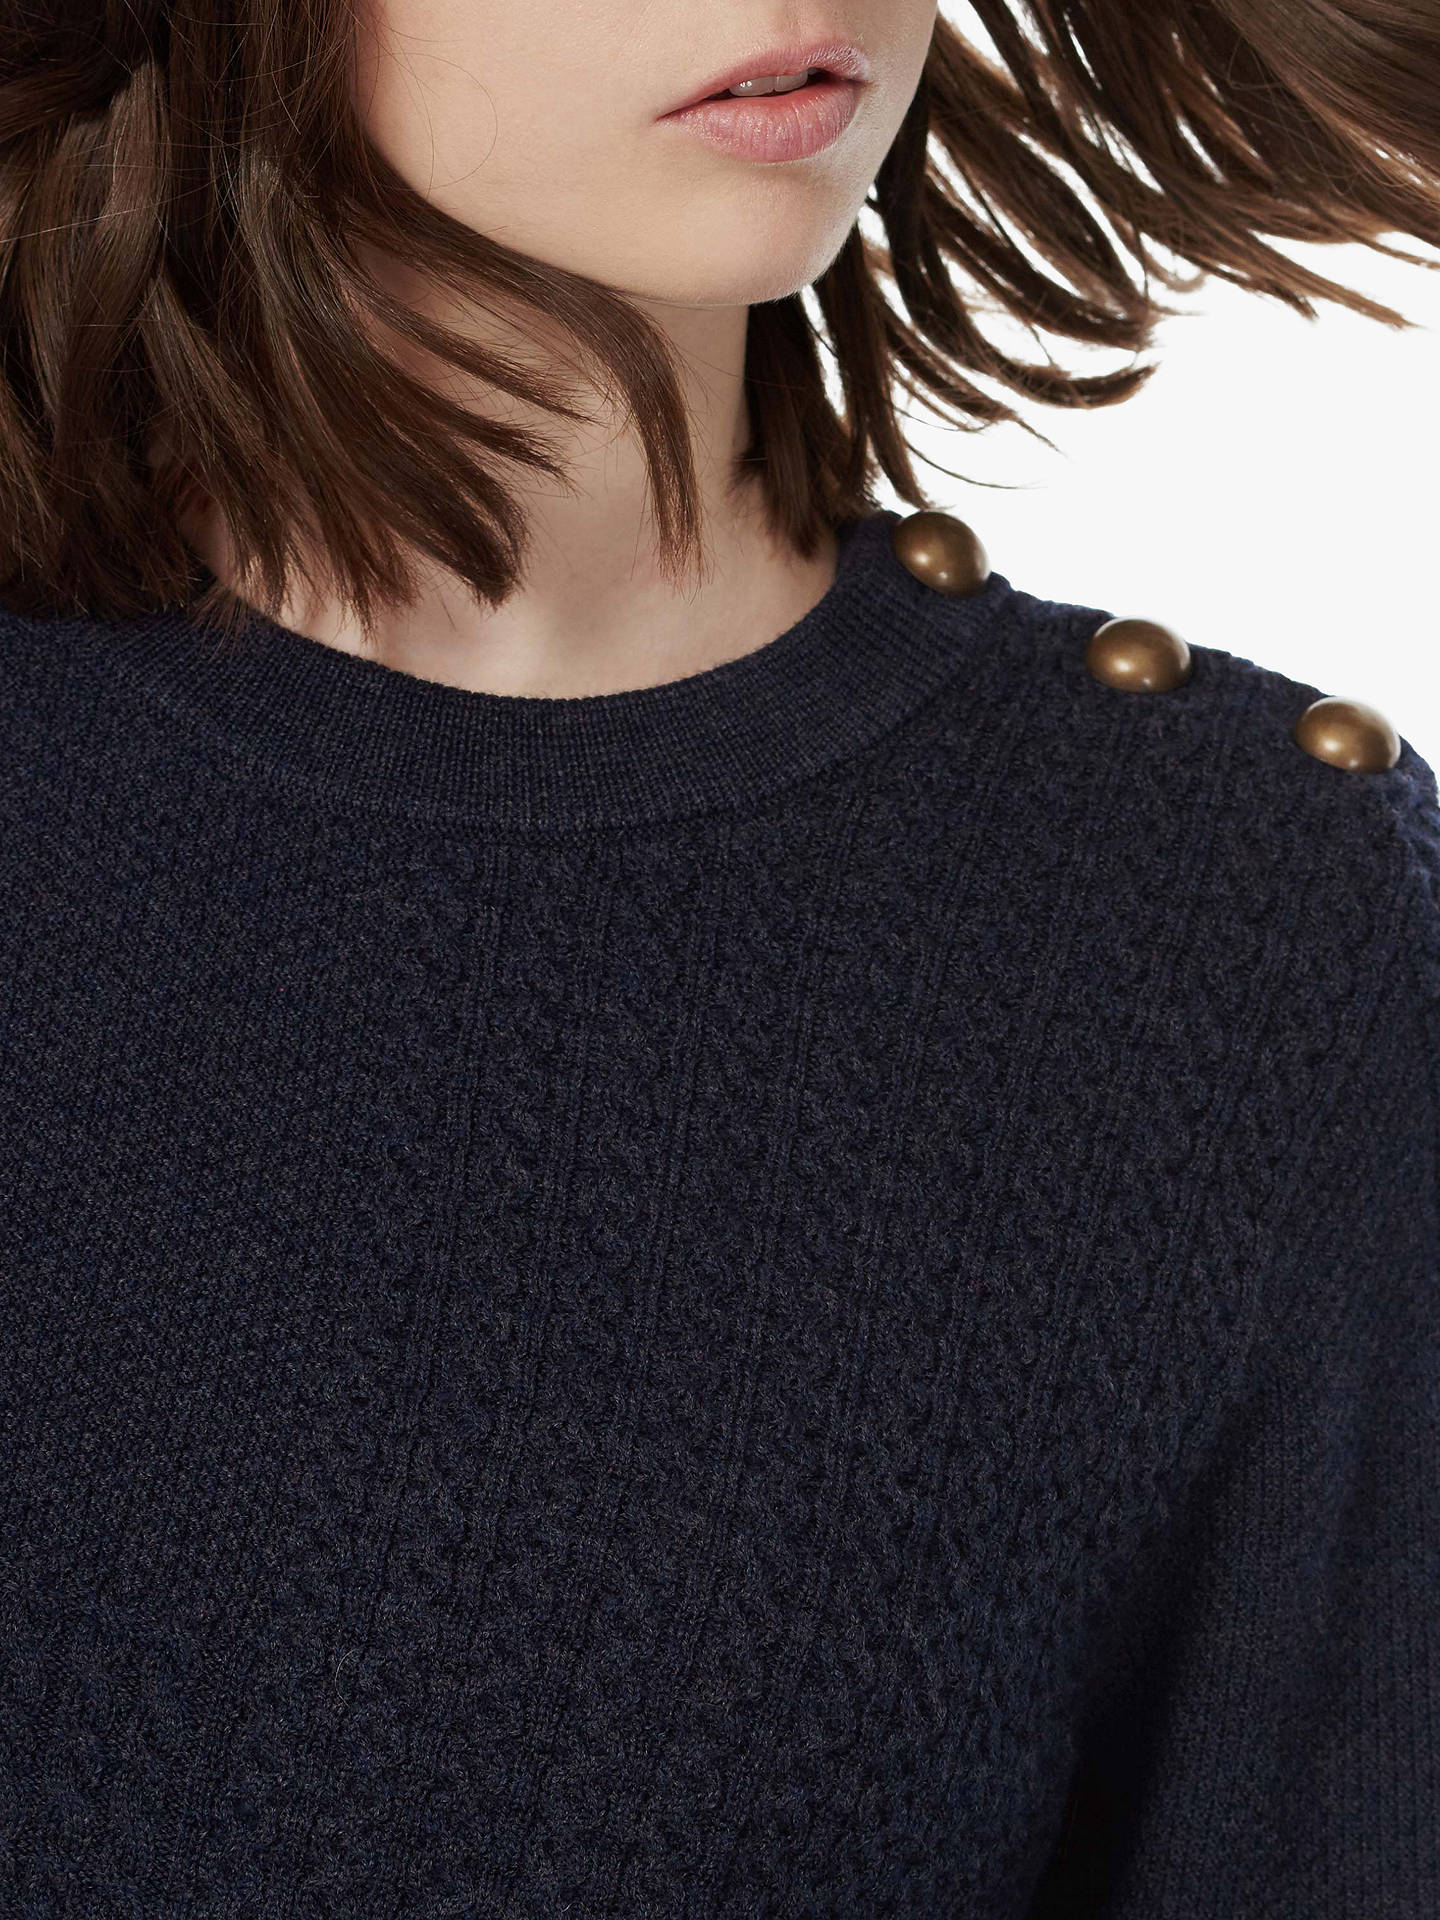 BuyBrora Merino Arran Knit Jumper, Ink, 8-10 Online at johnlewis.com